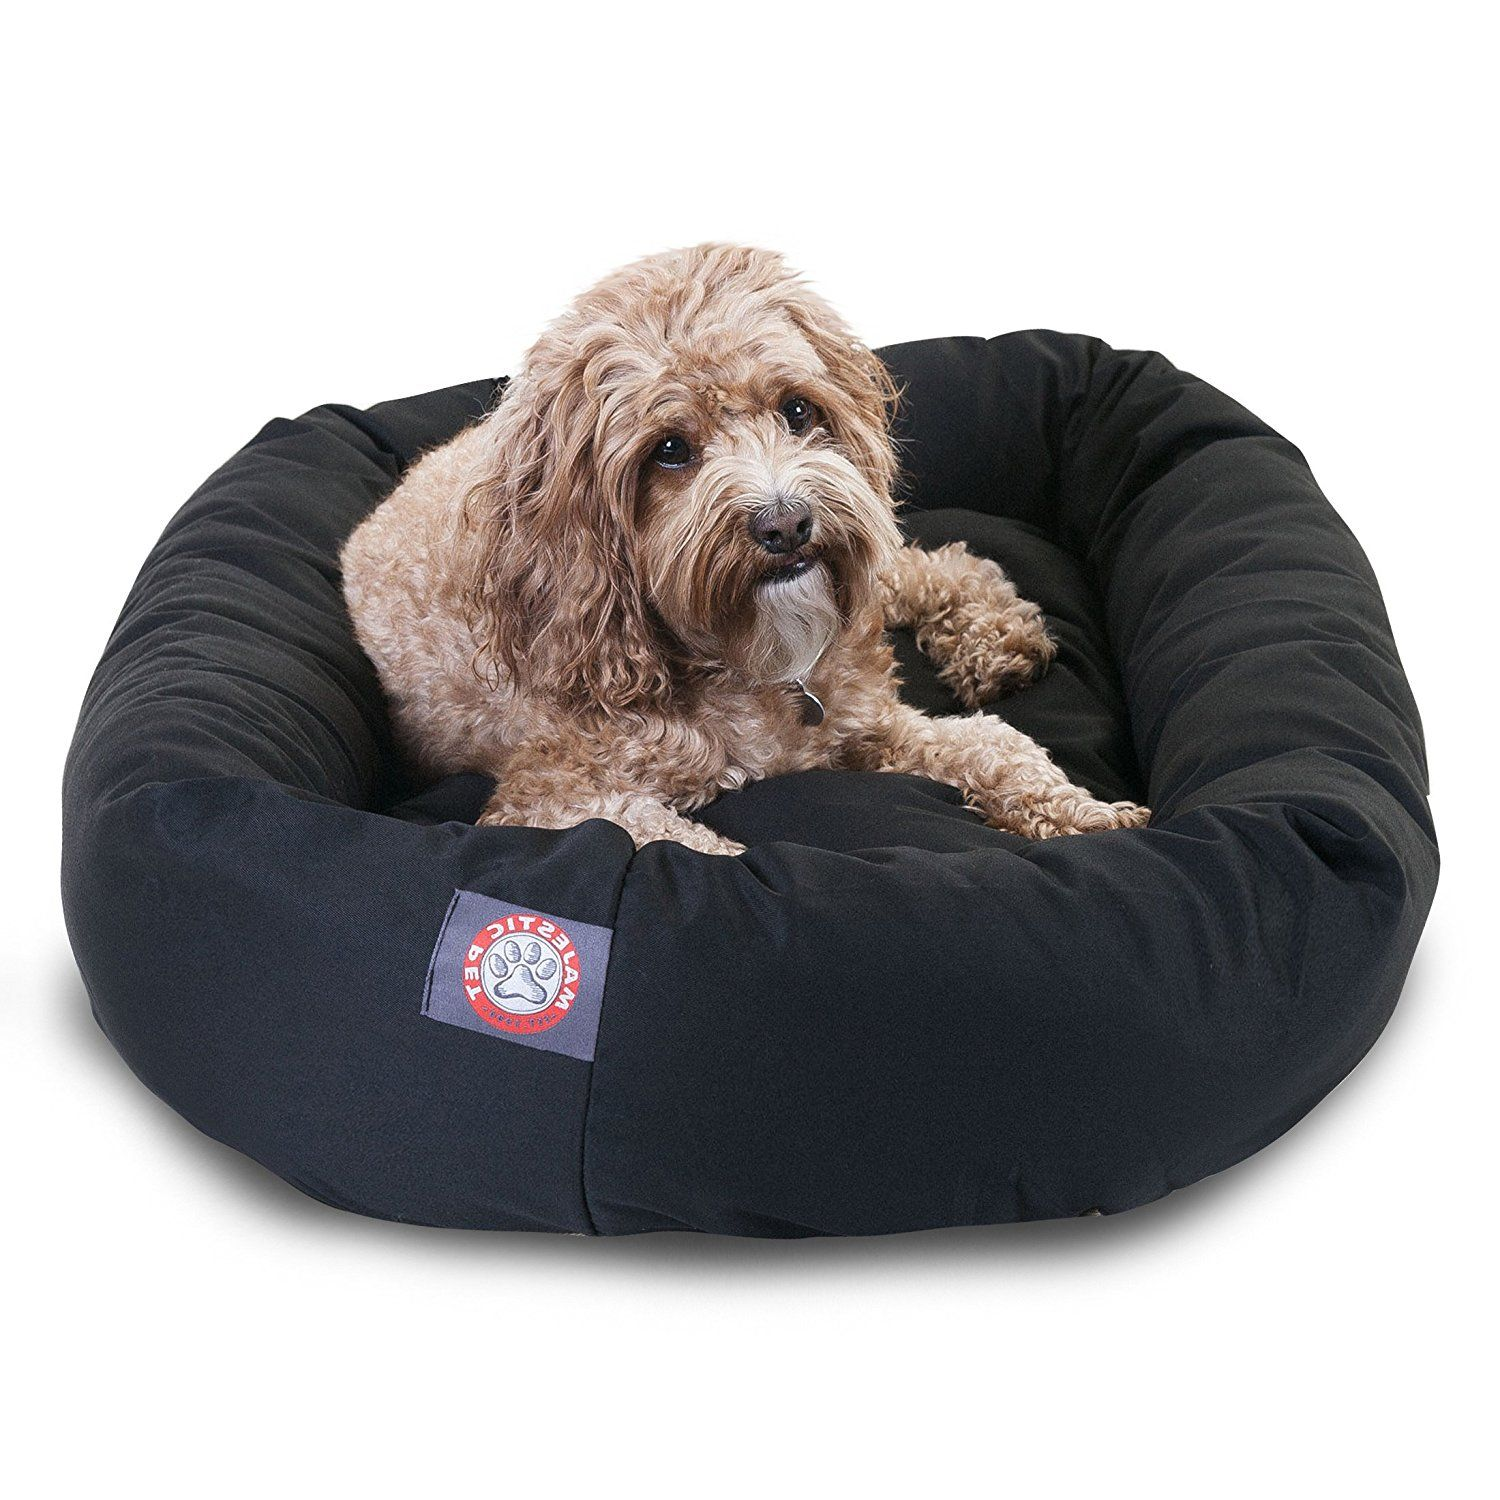 1 Piece Black Extra Large 52 Inches Comfort Pet Bed, Dark